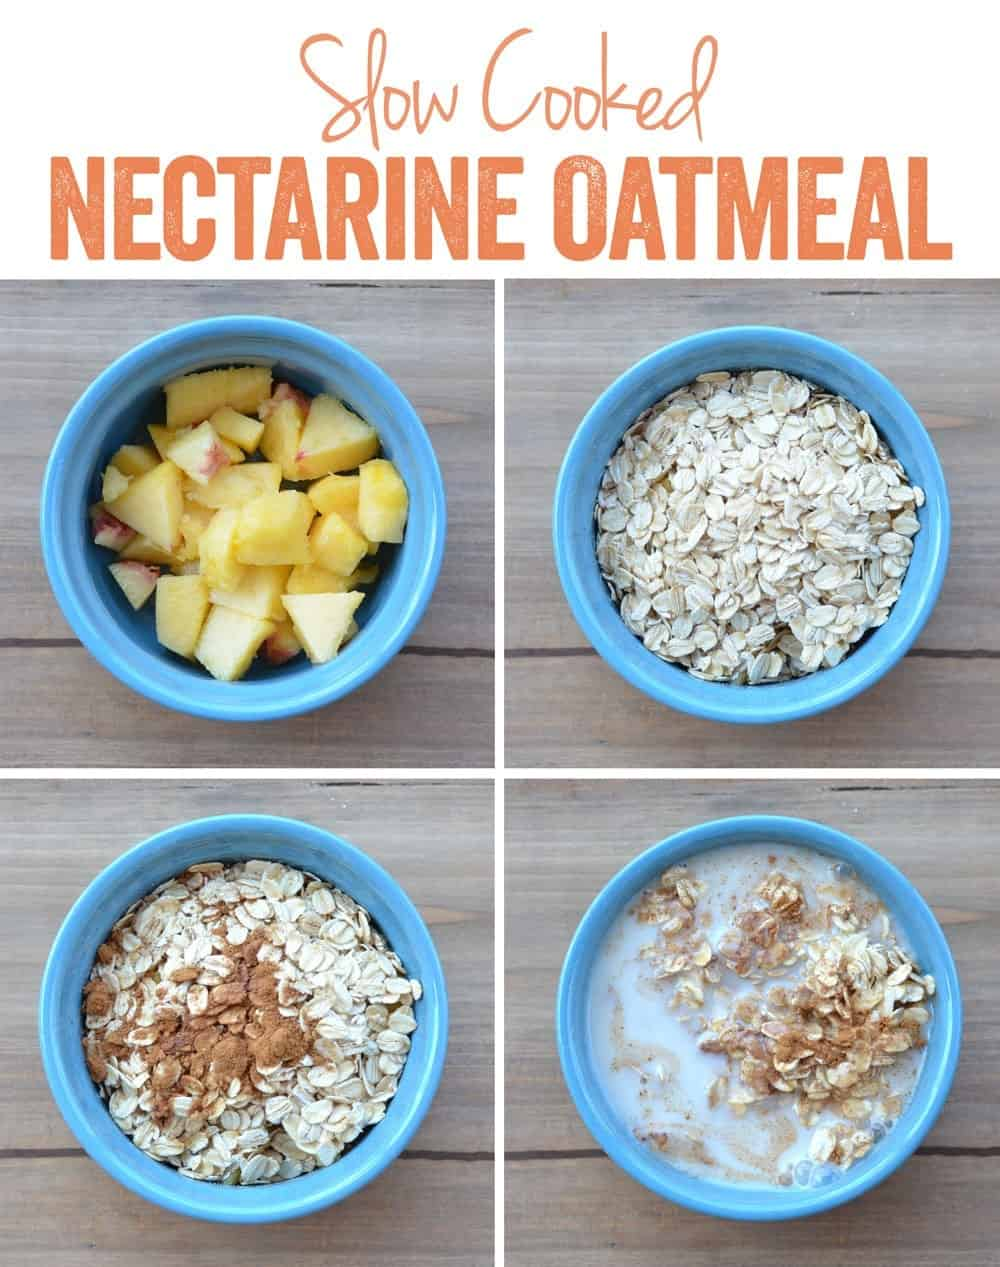 Slow Cooked Nectarine Oatmeal